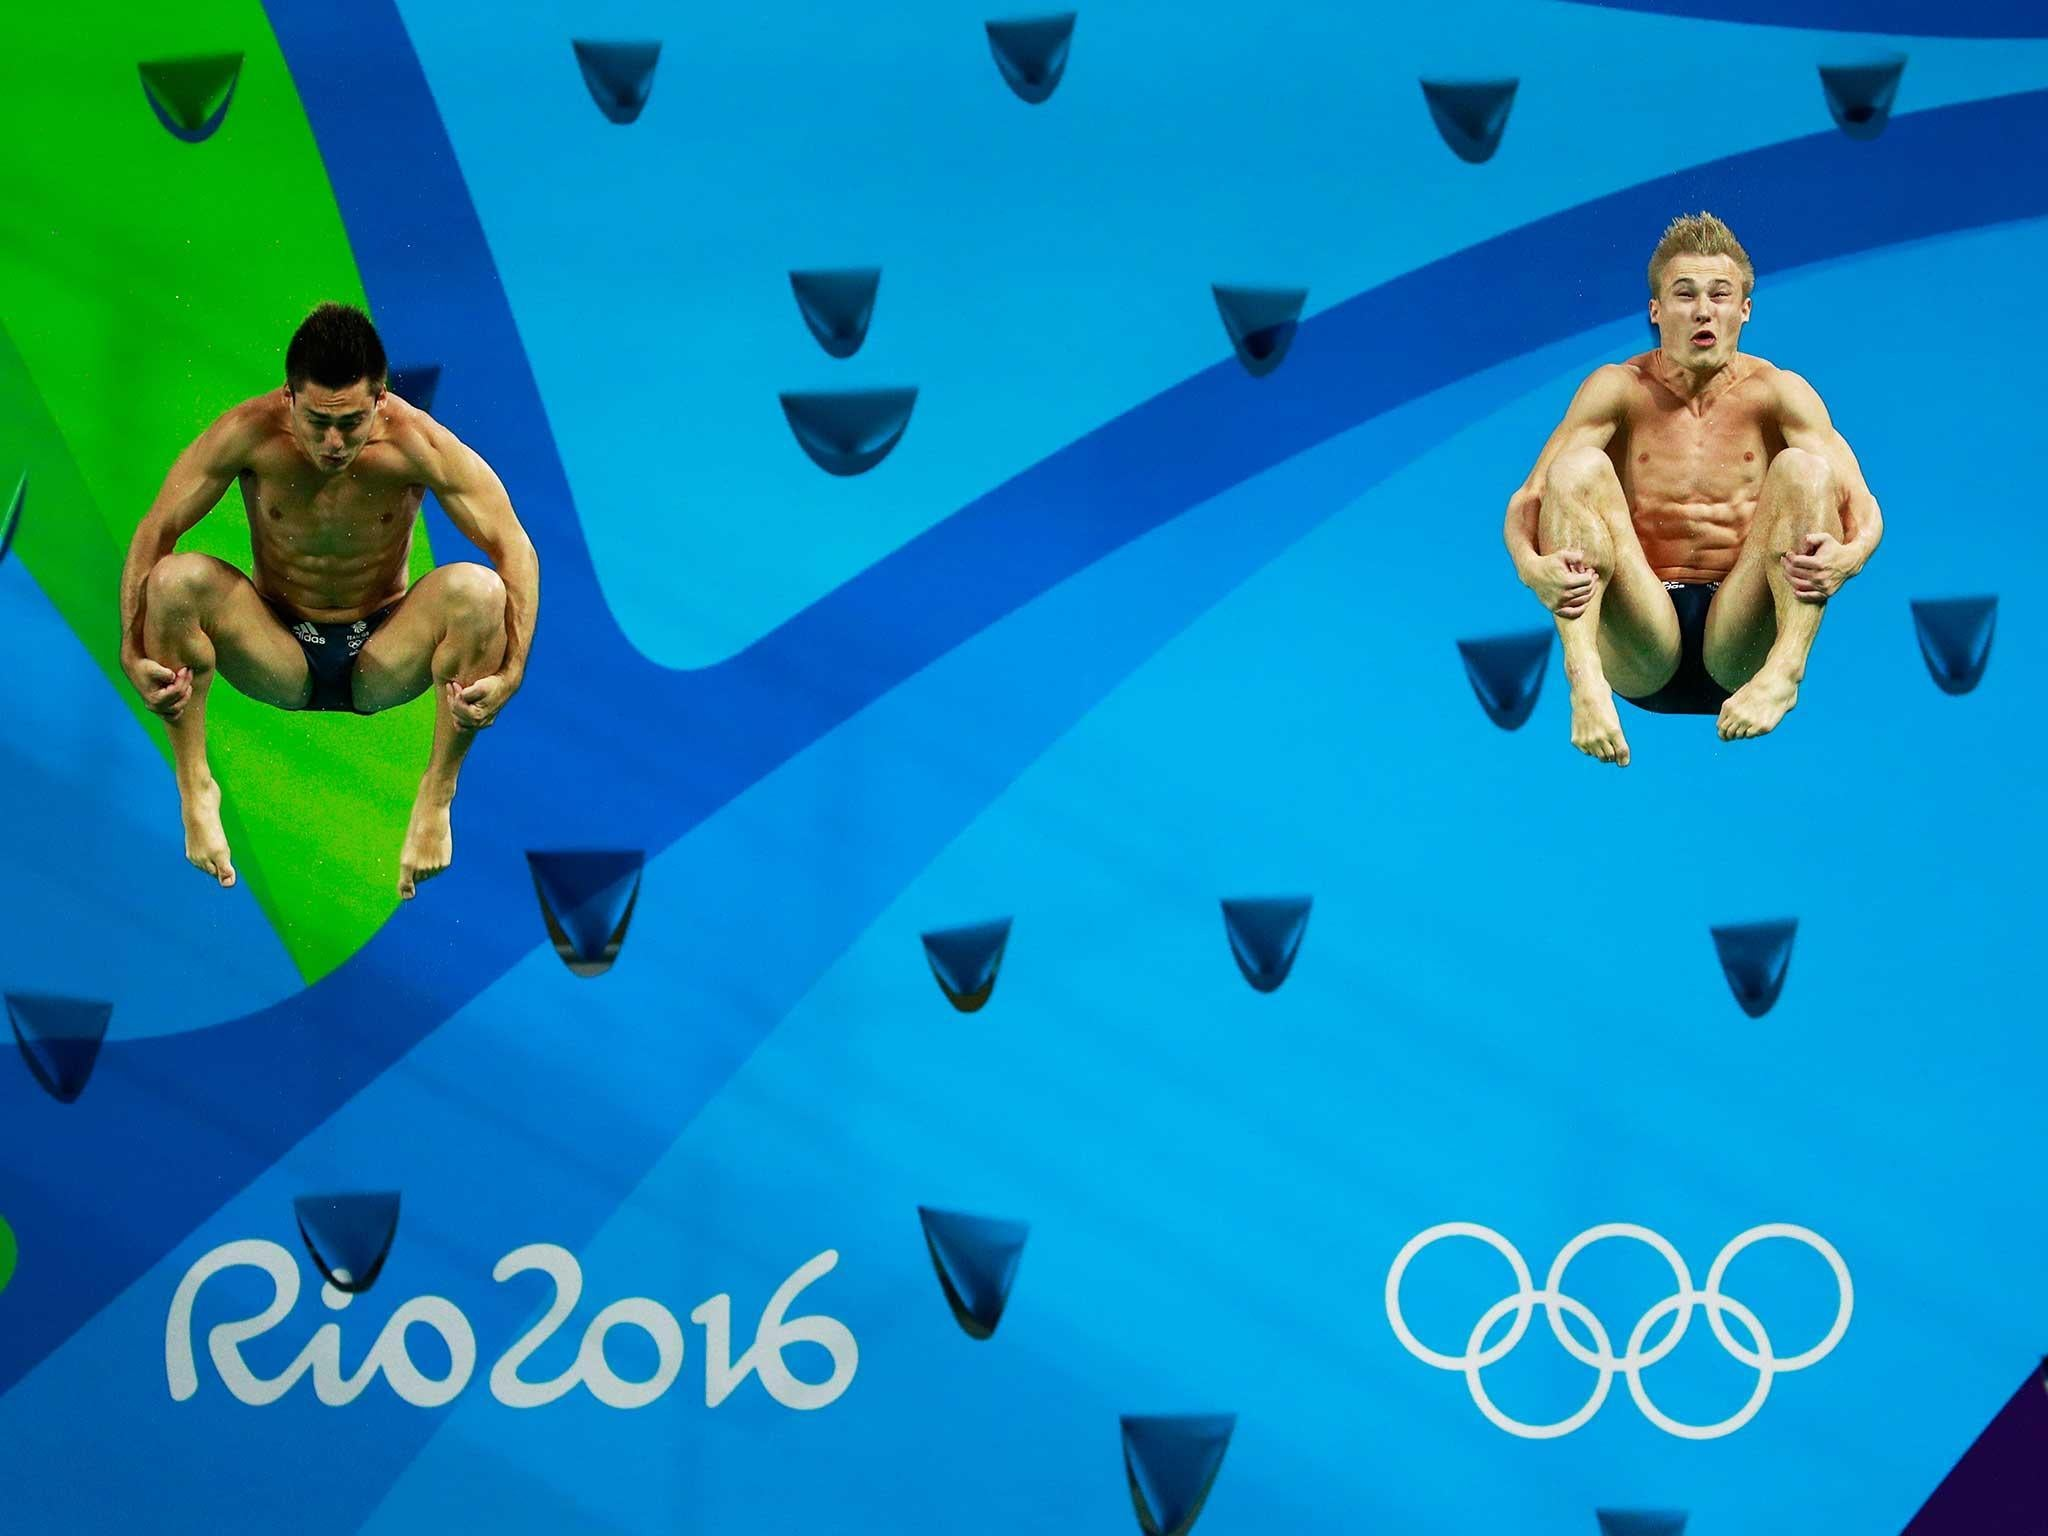 Chris Mears and Jack Laugher make a synchronised splash